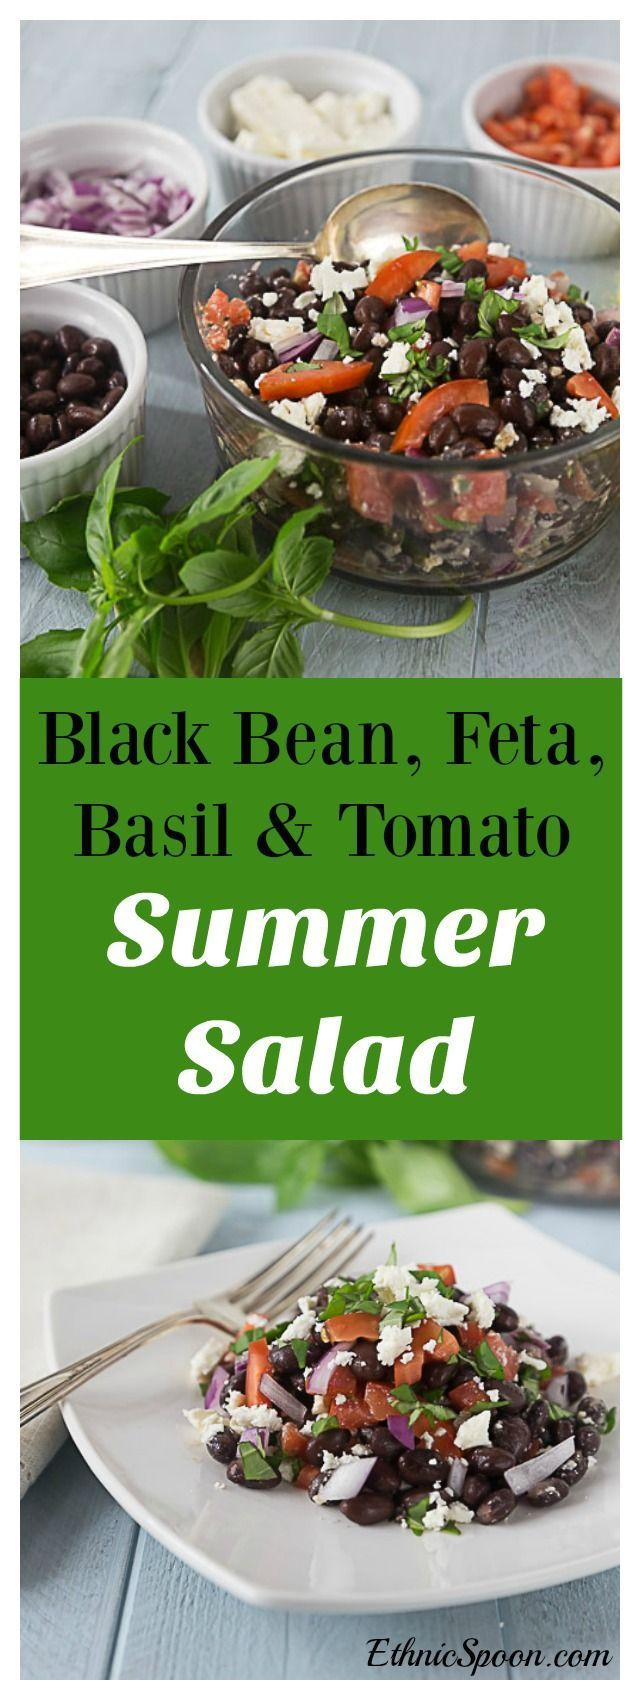 A great clean eating healthy recipe. Black bean, feta, basil, red onion and tomato salad. Try a great cool summer salad with